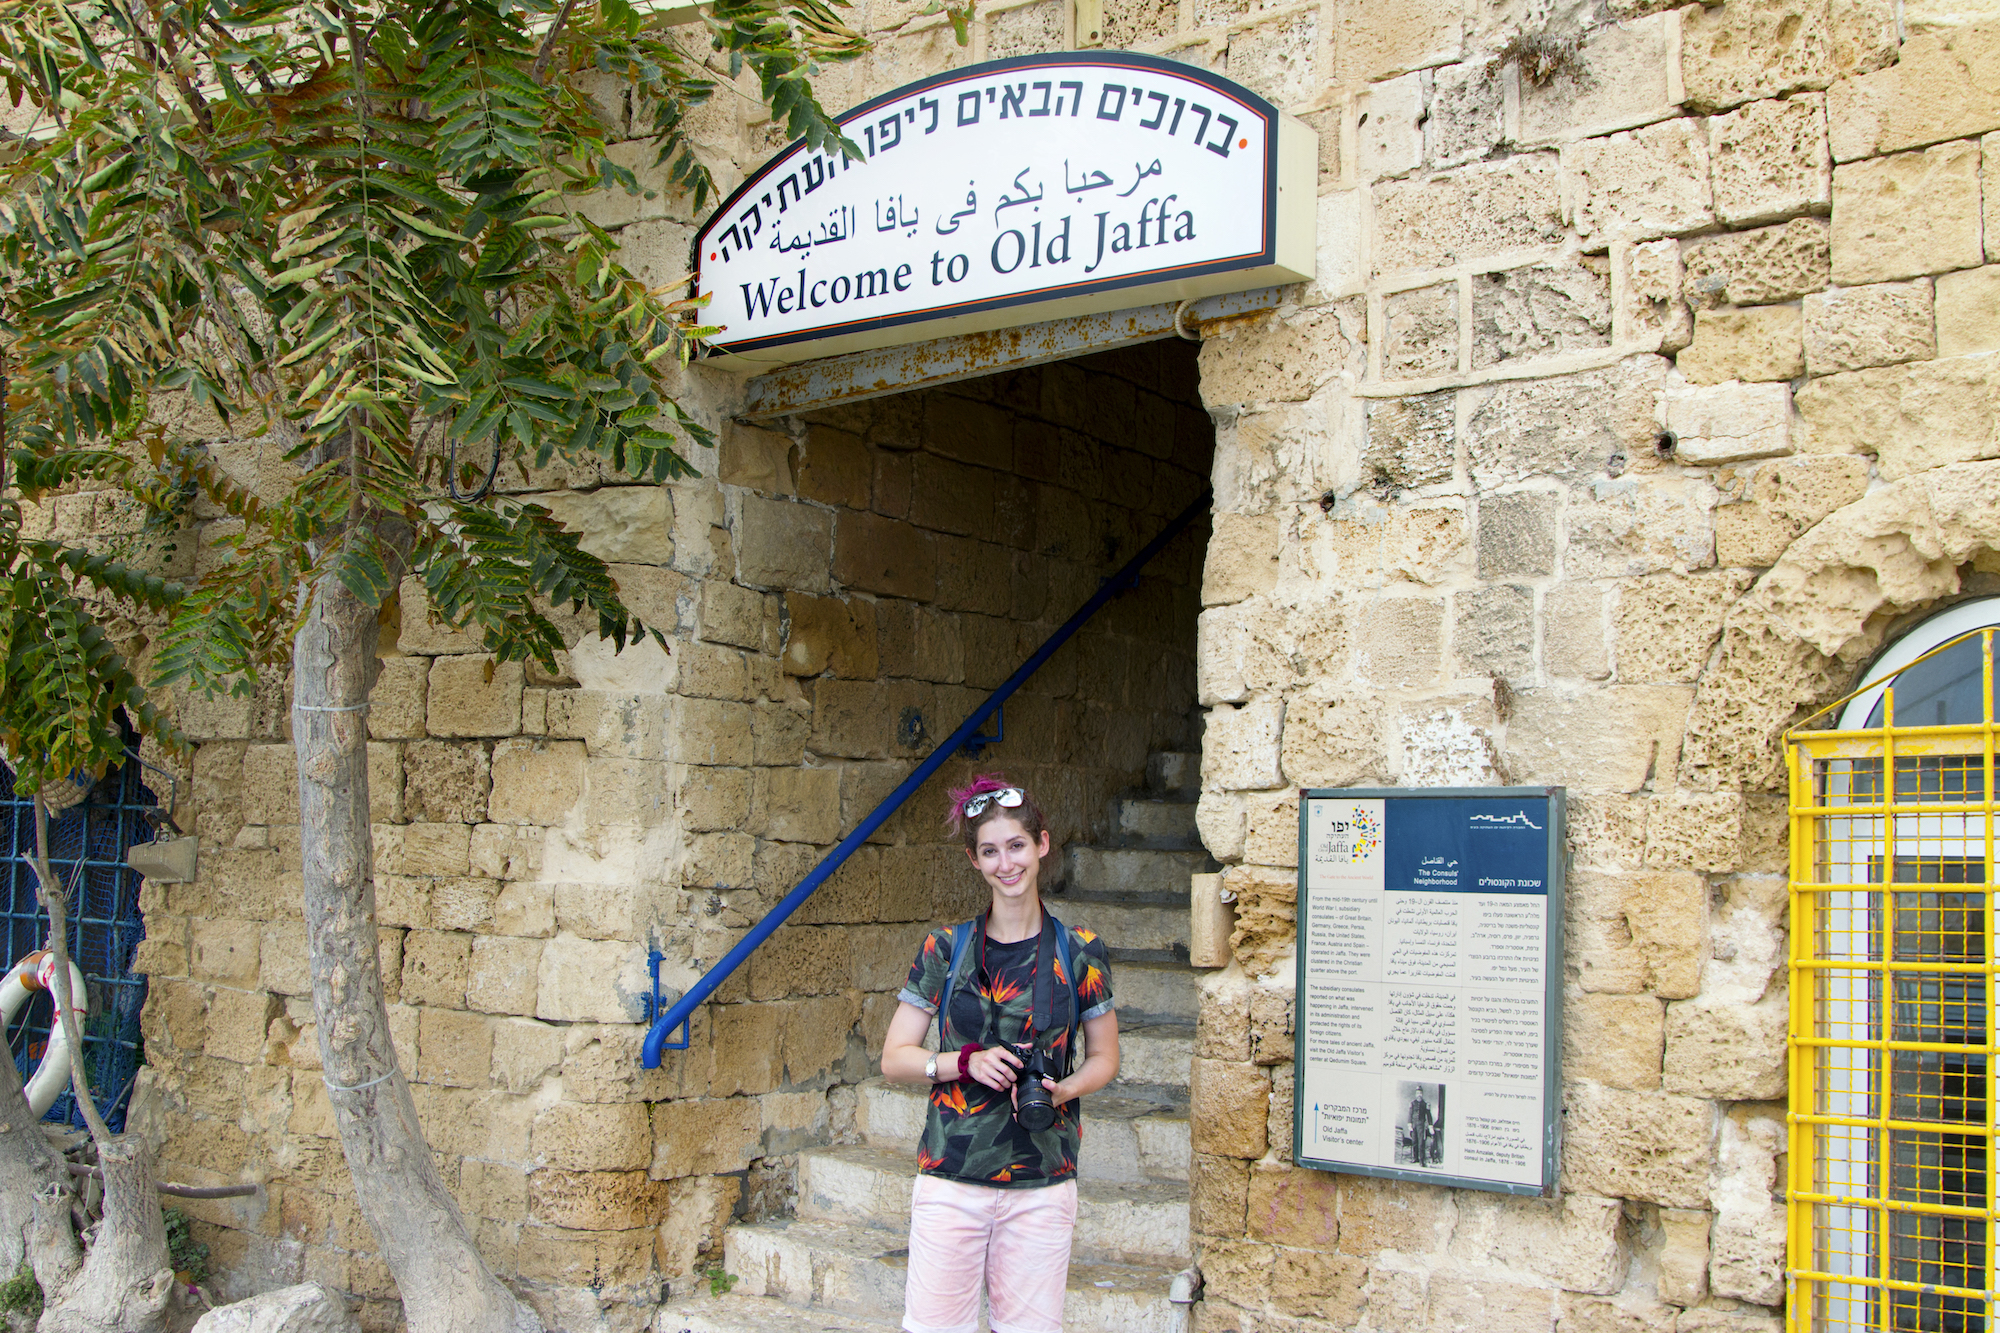 Geena Matuson at the entrance of Old Jaffa in Tel Aviv, Israel @geenamatuson.